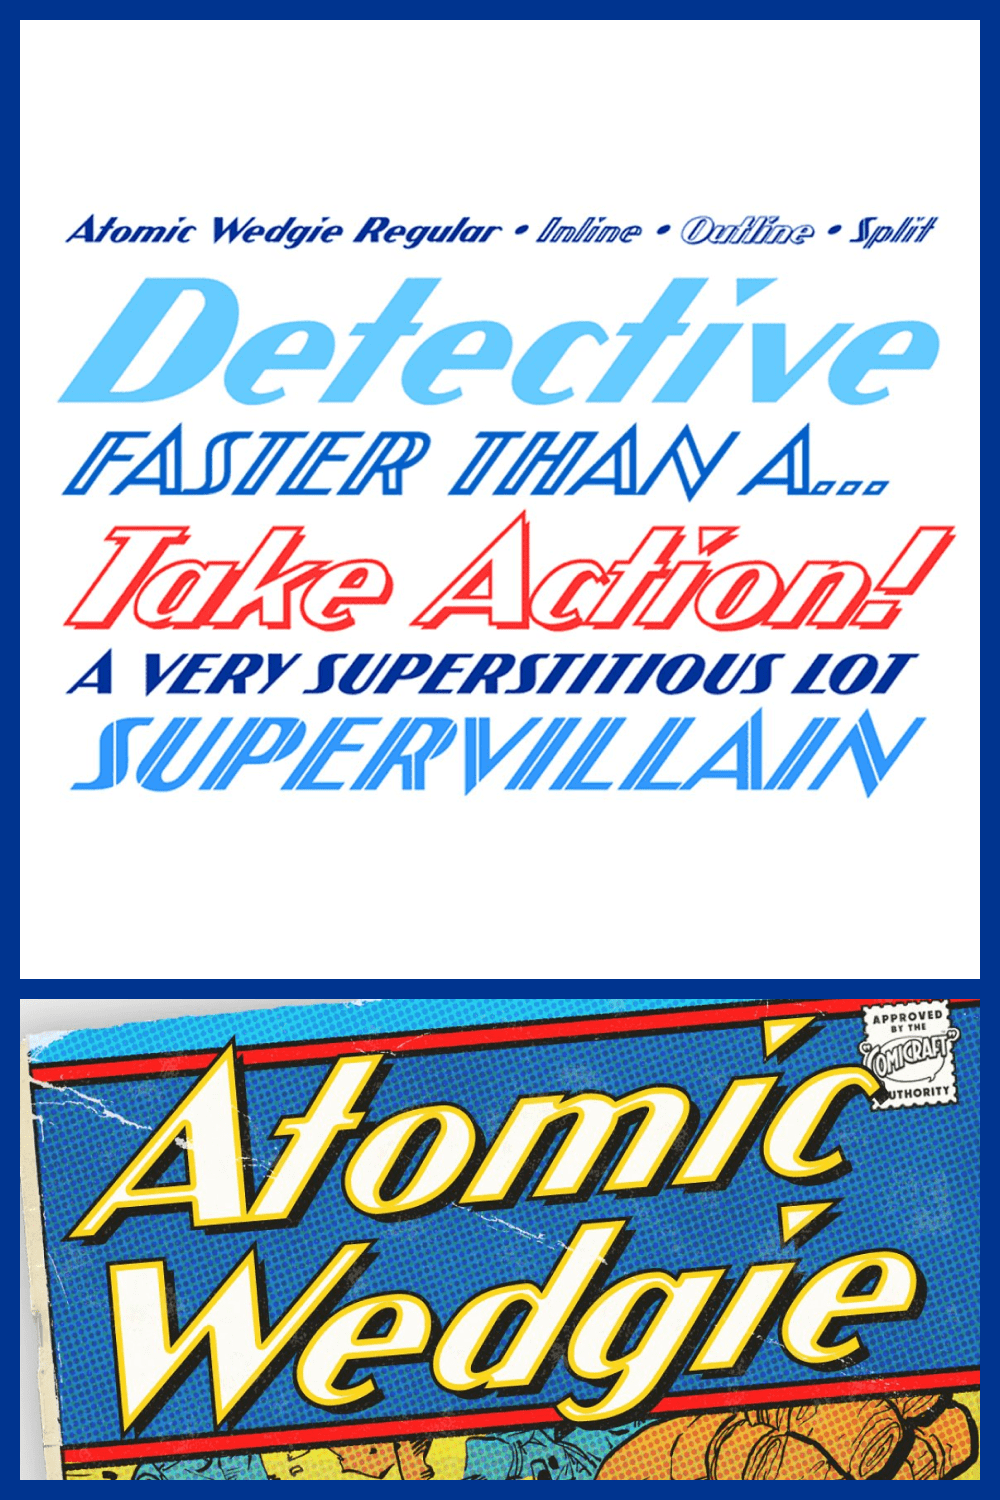 This font is a victory over evil, a real superhero.